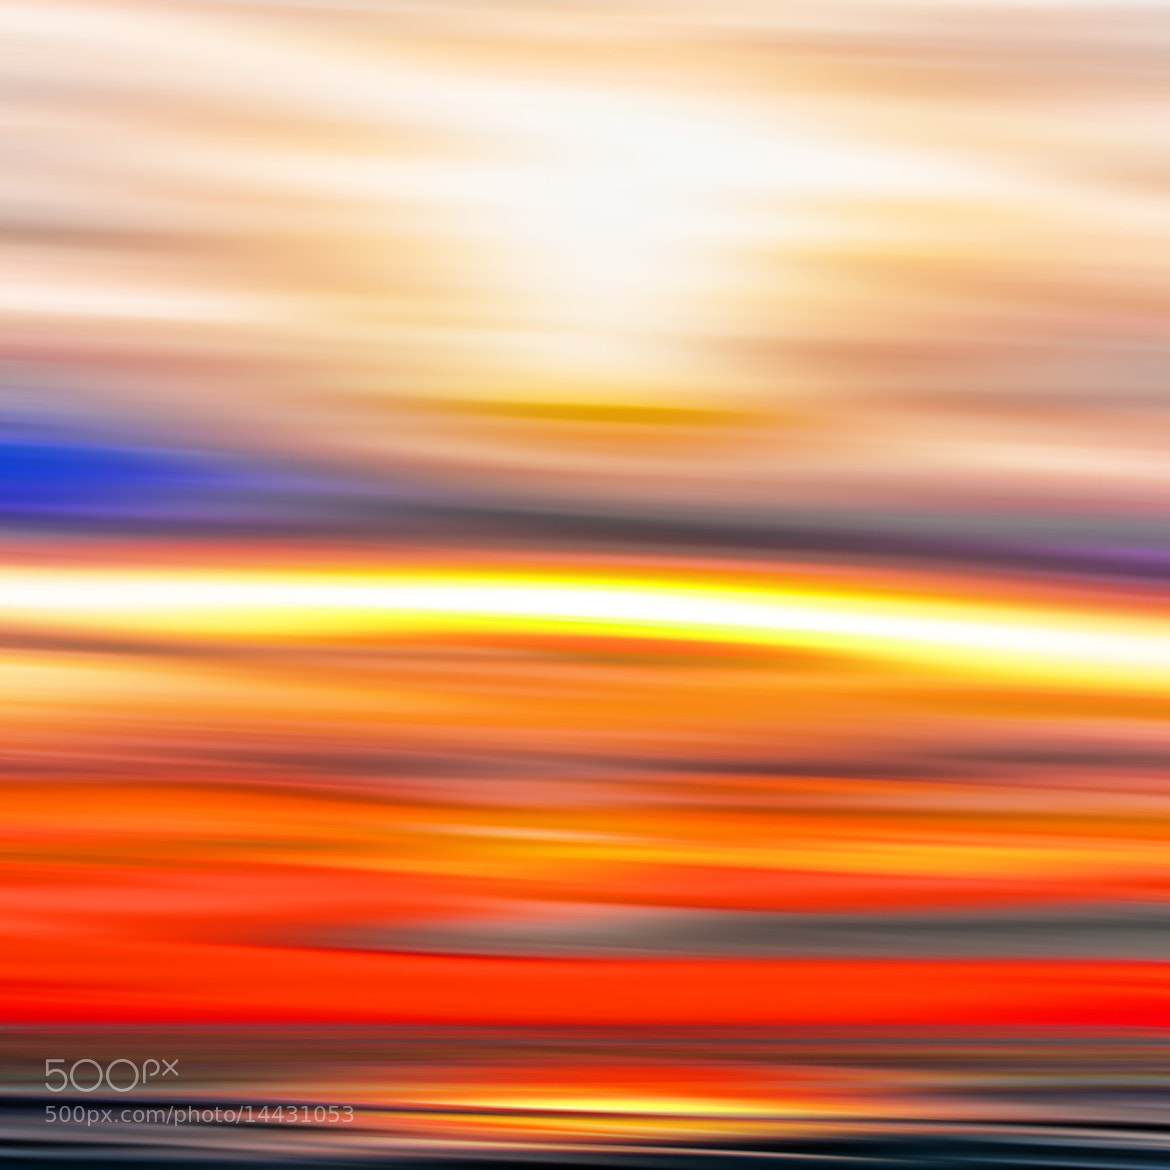 Photograph SkySea by Coolor Foto on 500px